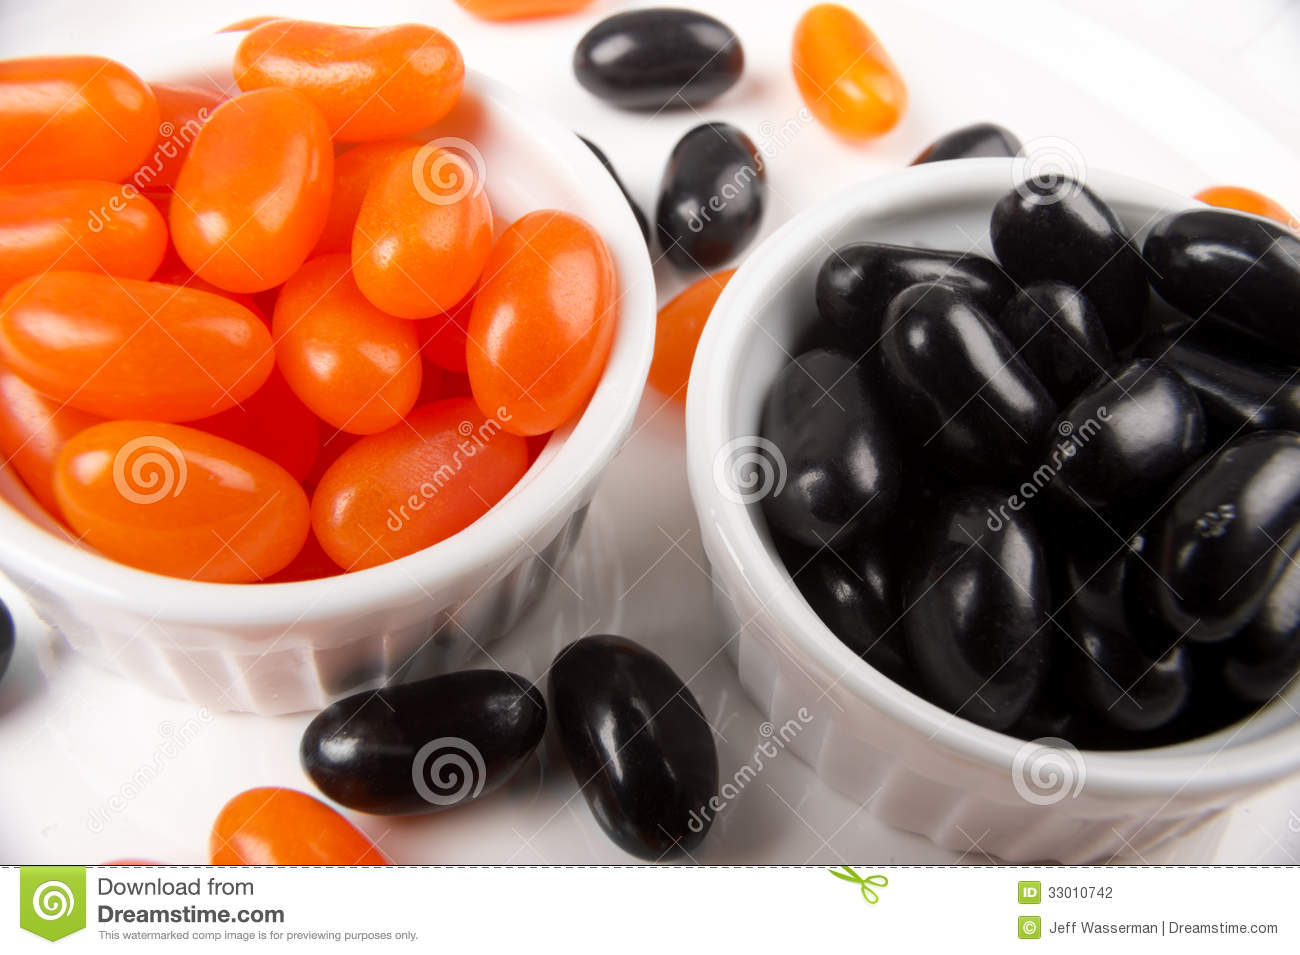 jelly beans for halloween in orange and black stock photography image 33010742. Black Bedroom Furniture Sets. Home Design Ideas